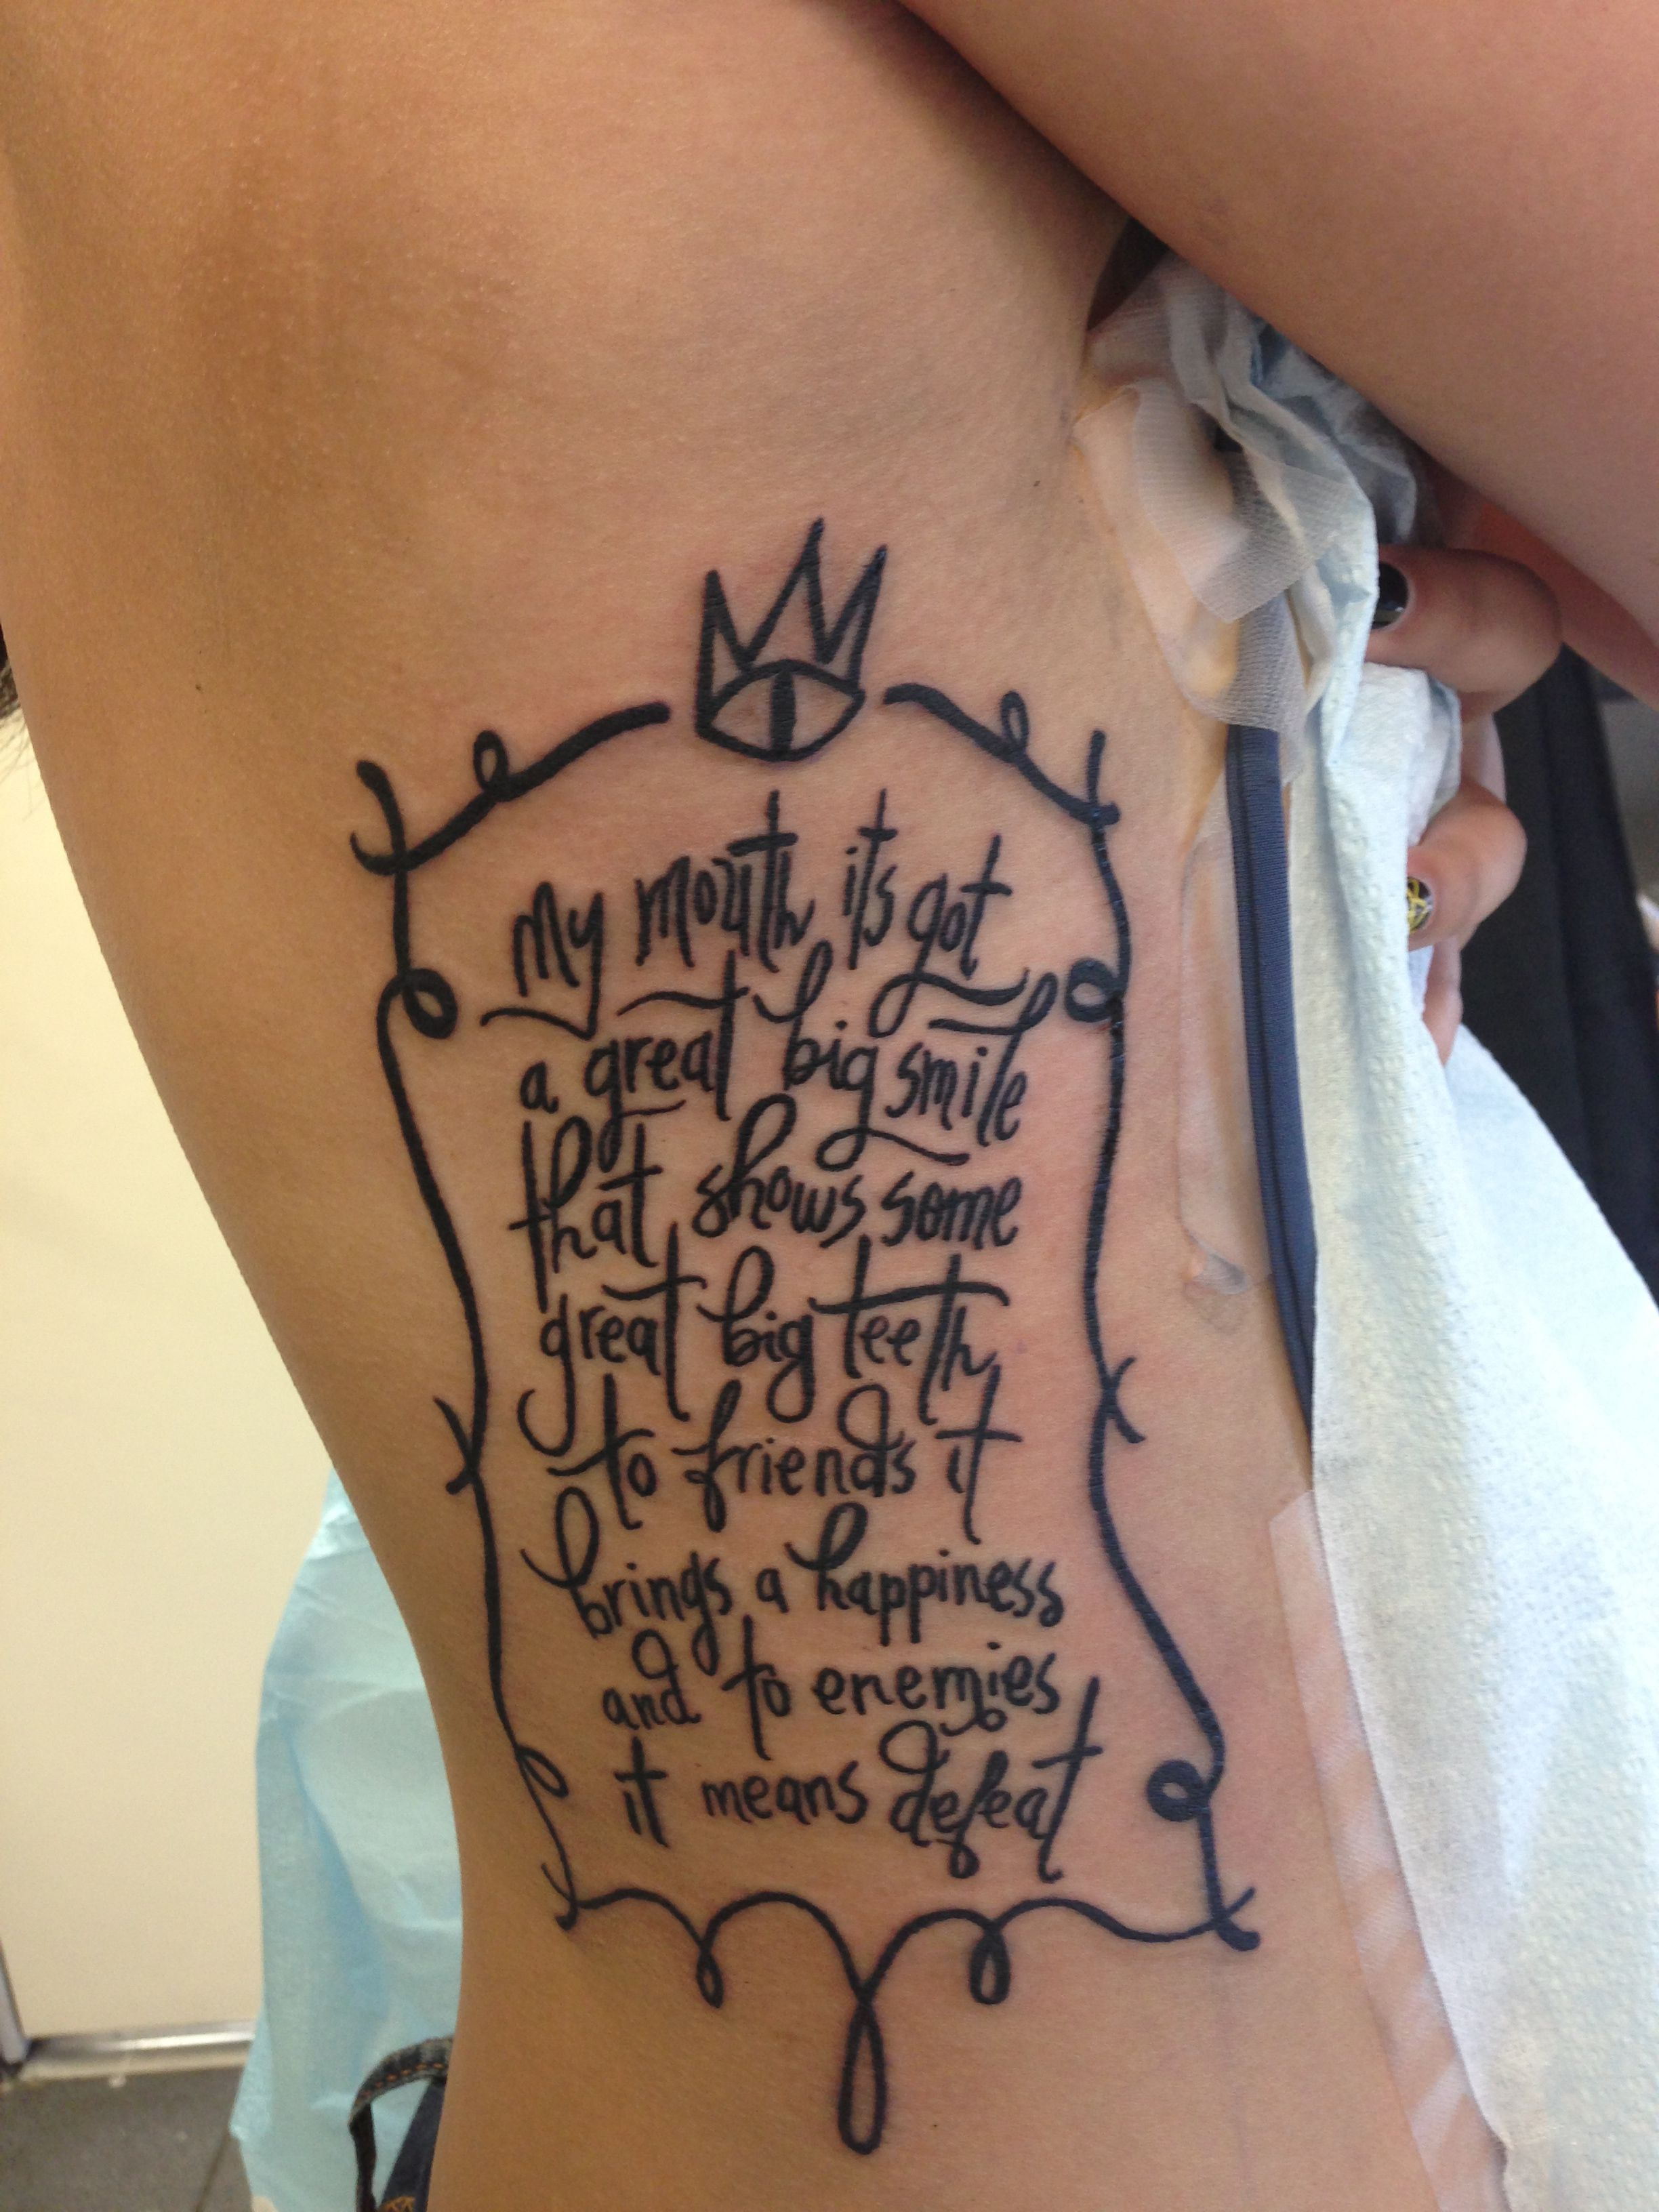 The Cat Empire Tattoo My Mouth Its Got A Great Big Smile That